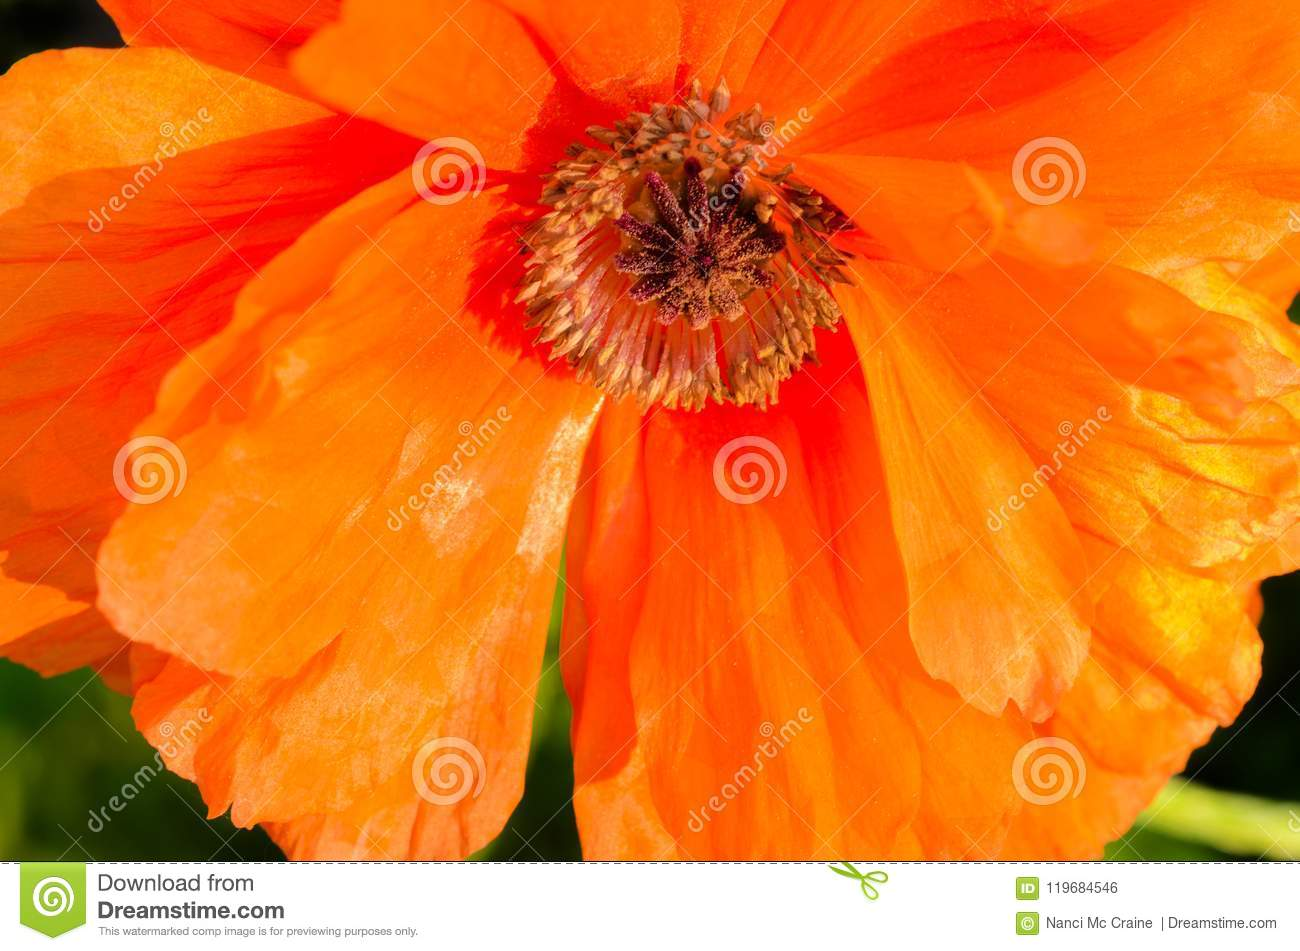 Poppy Flower With Paper Thin Orange Petals Stock Photo Image Of